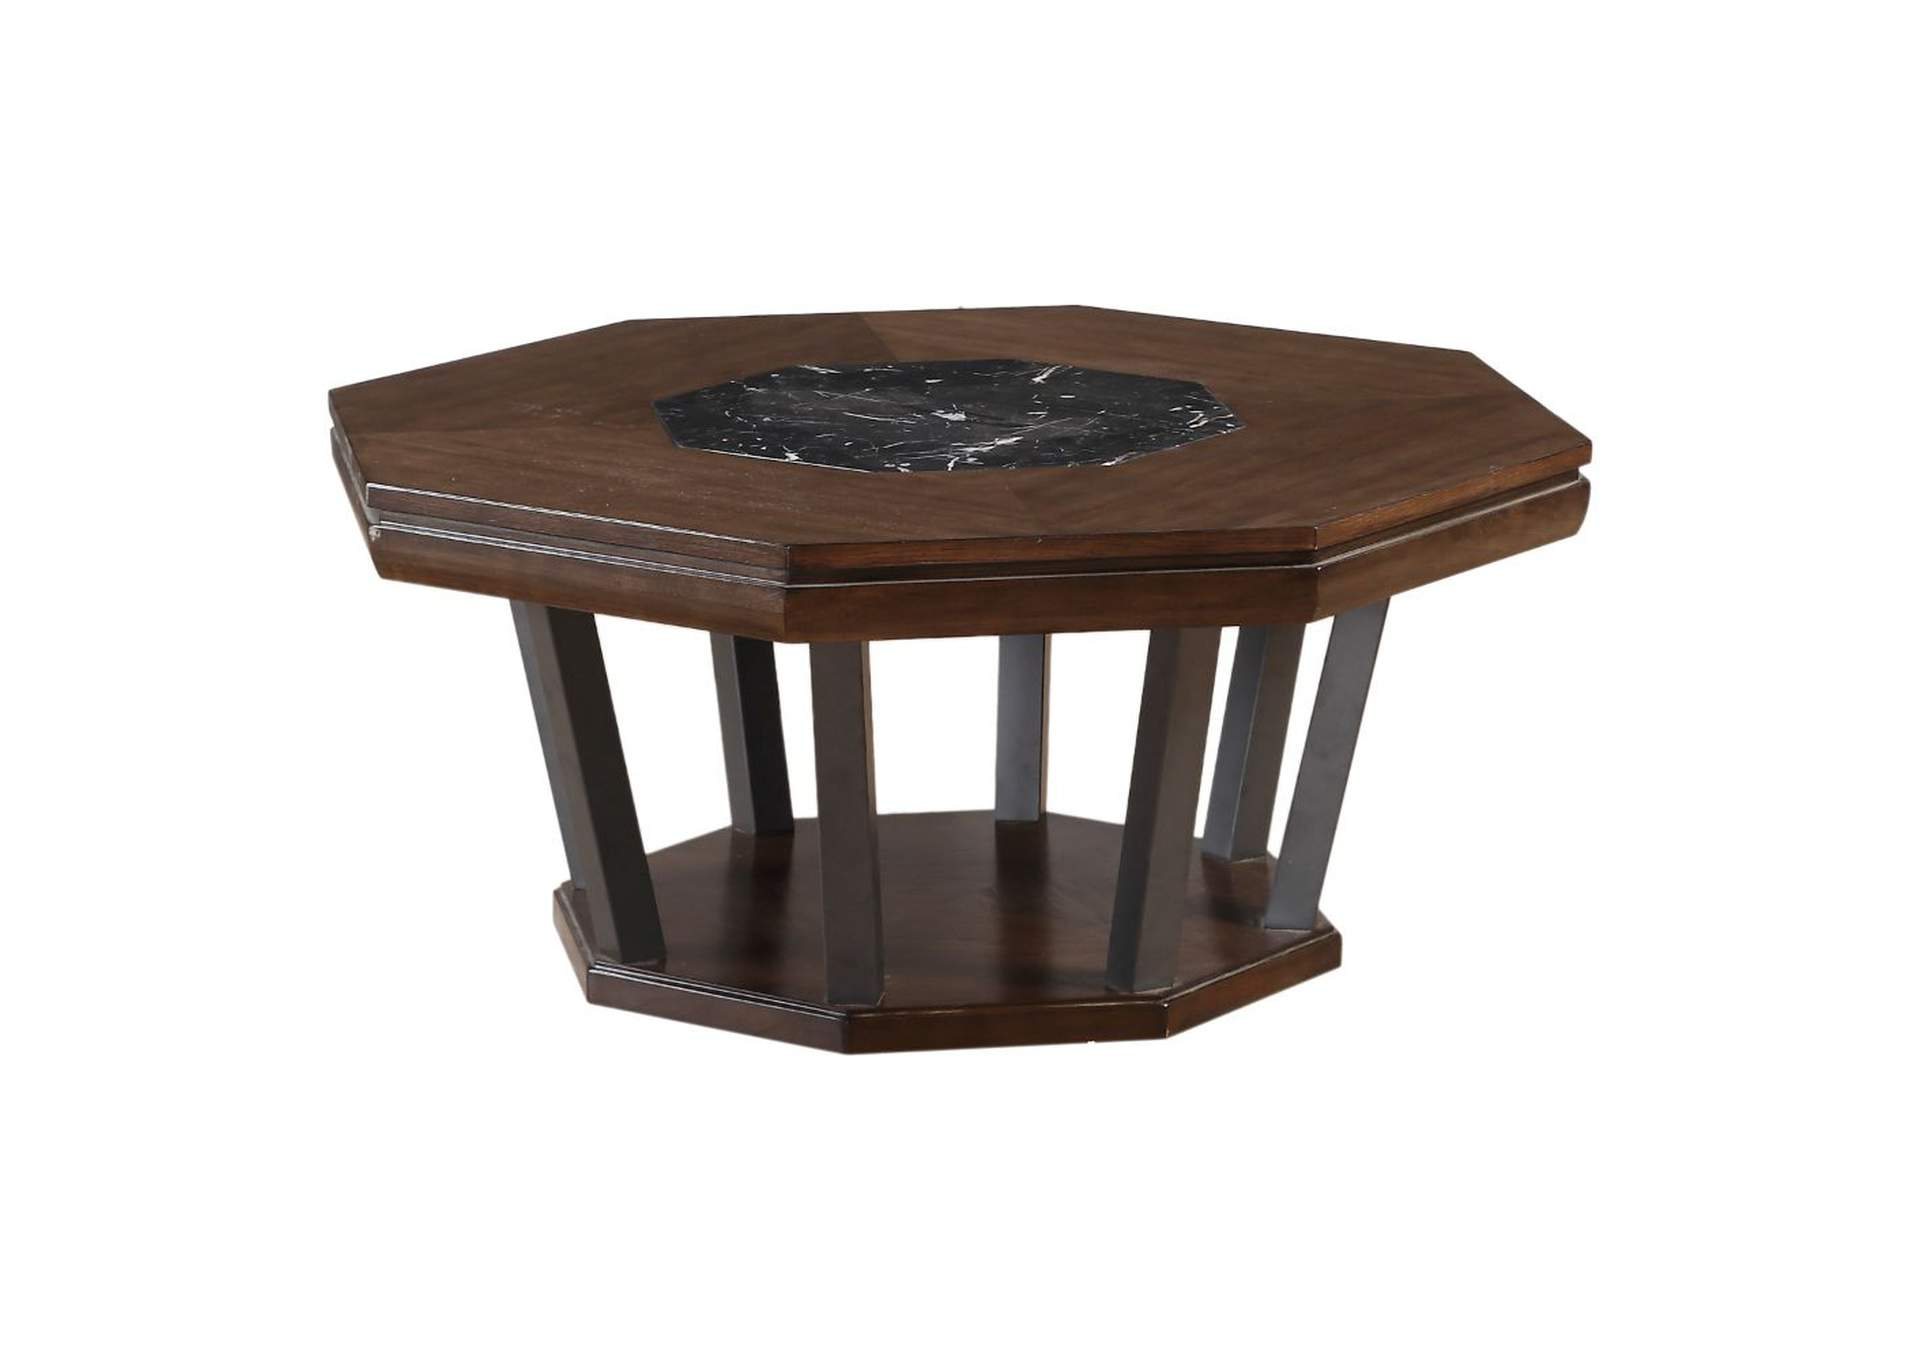 Selma Marble & Tobacco Coffee Table,Acme